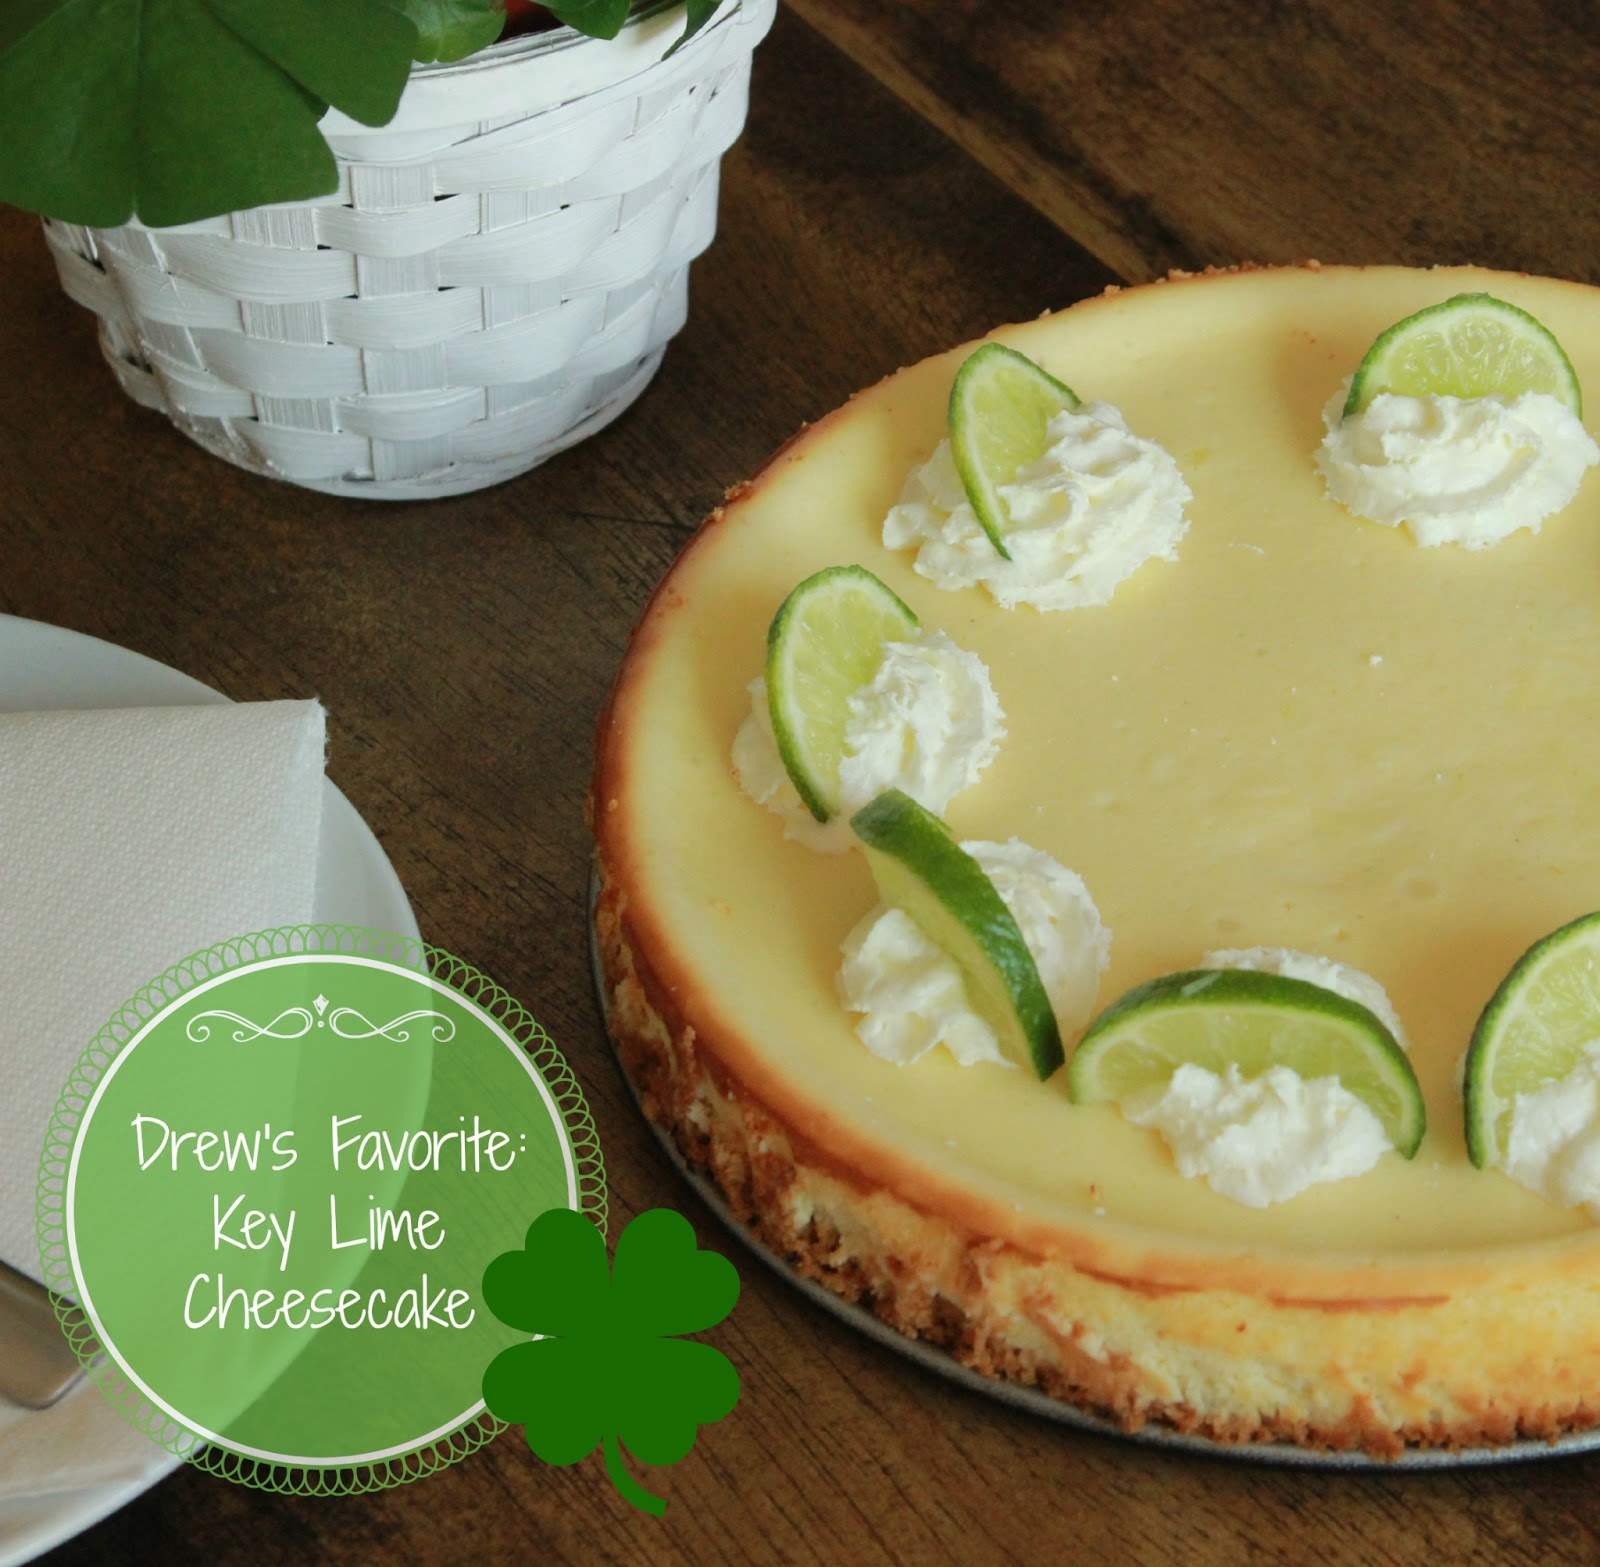 Key Lime Cheesecake for Drew and Green Day ~